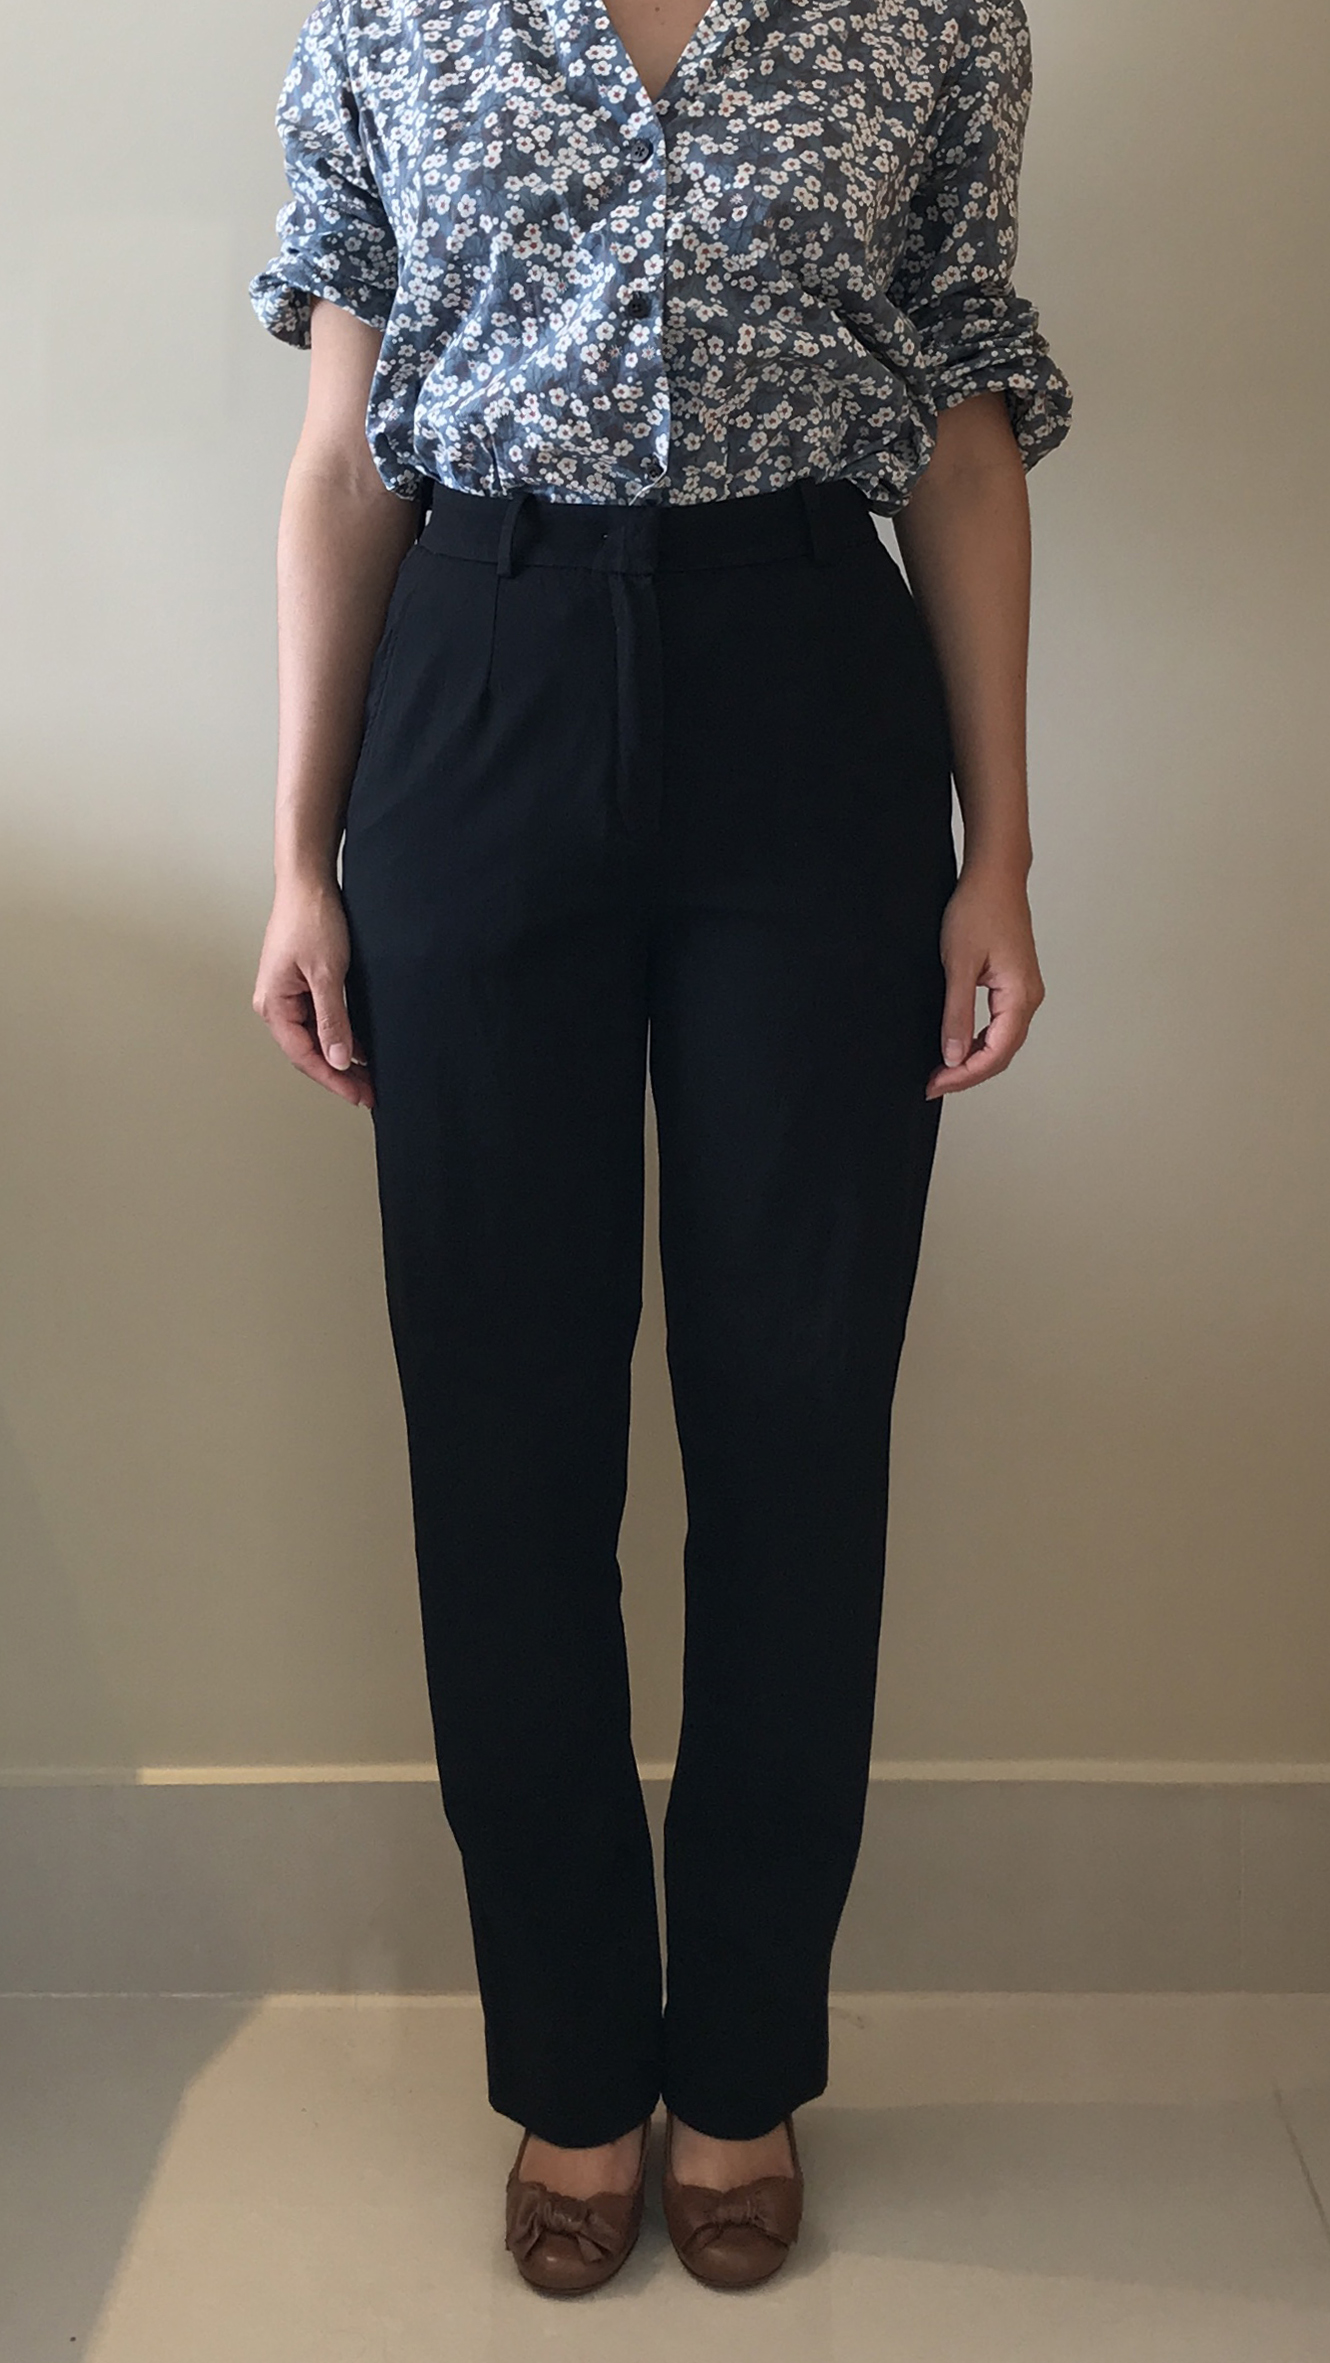 YSL-trousers-front.jpg